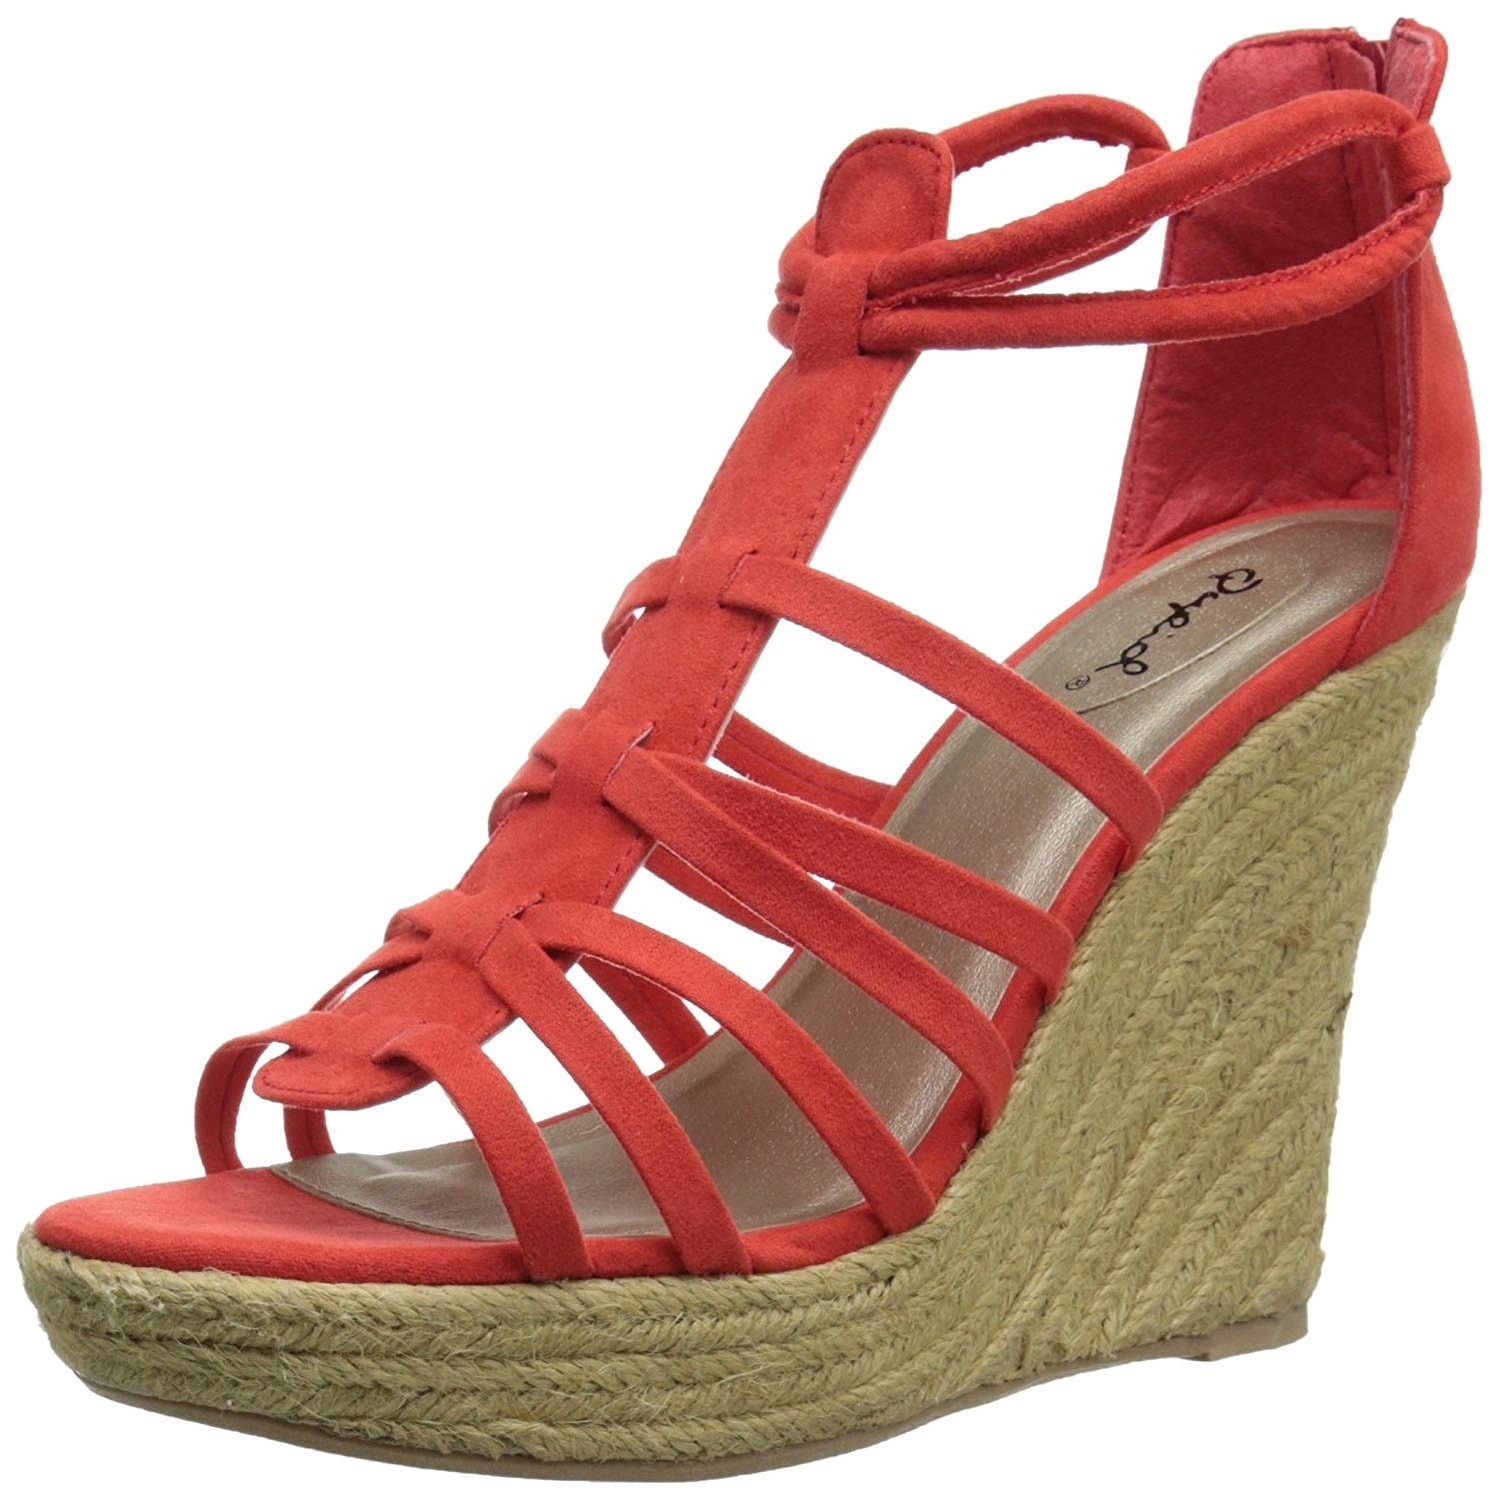 951a8e46784 Buy Black Qupid Women's Sandals Online at Overstock | Our Best ...